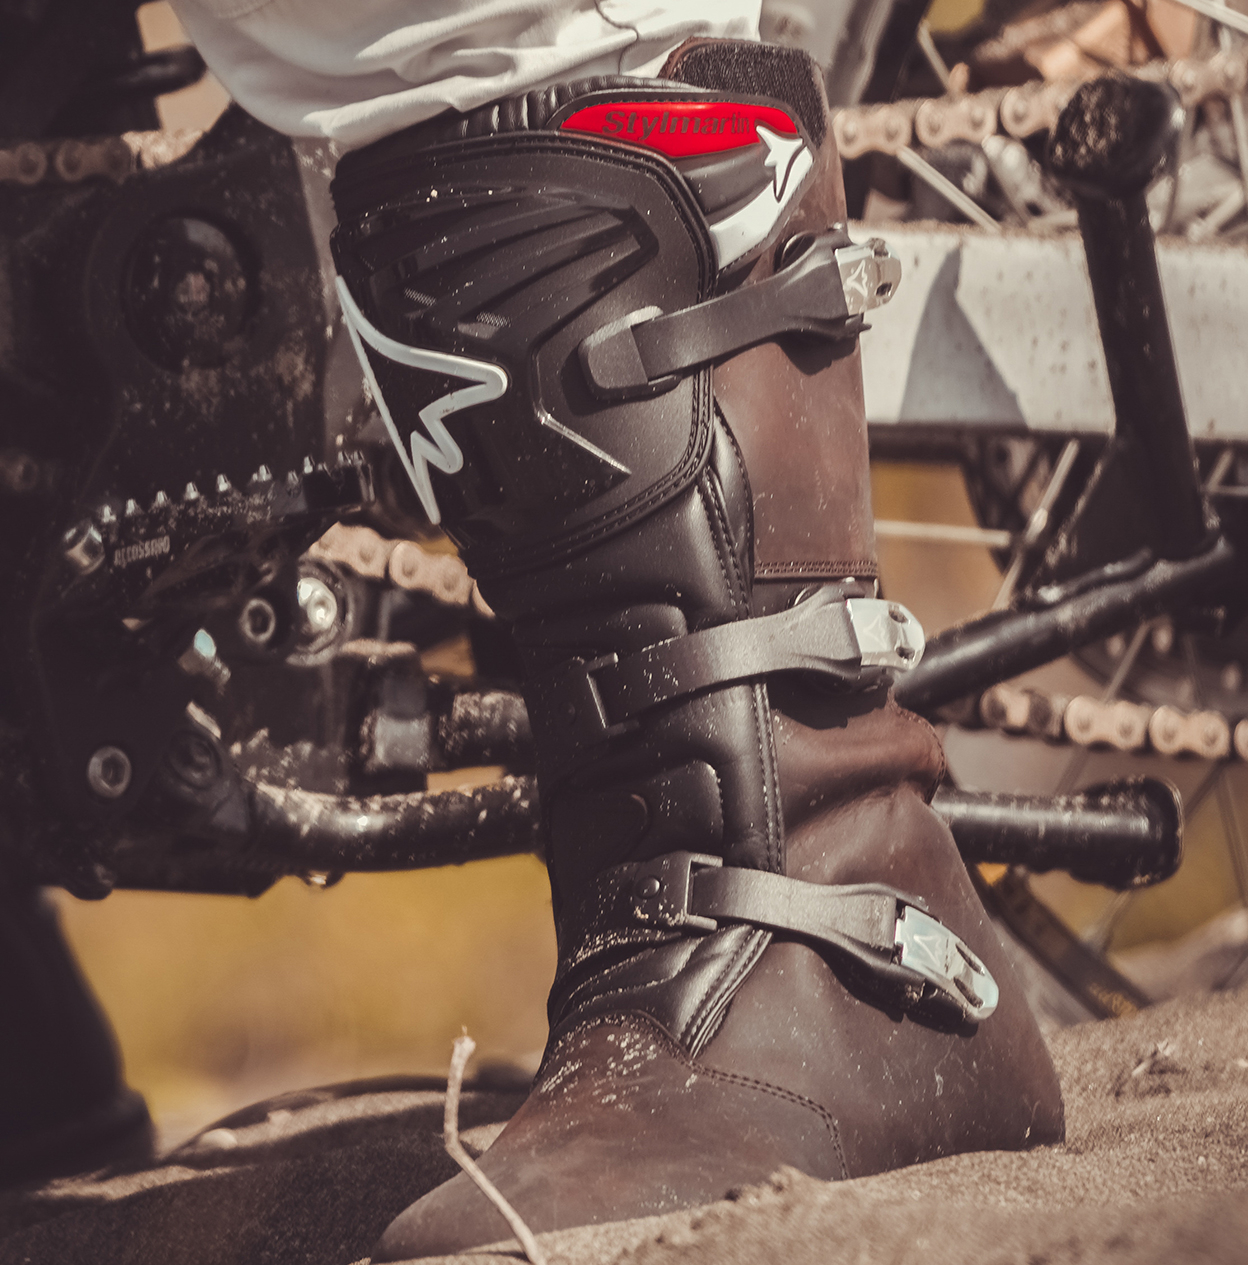 What kind of boots for motorcycle: Enduro.